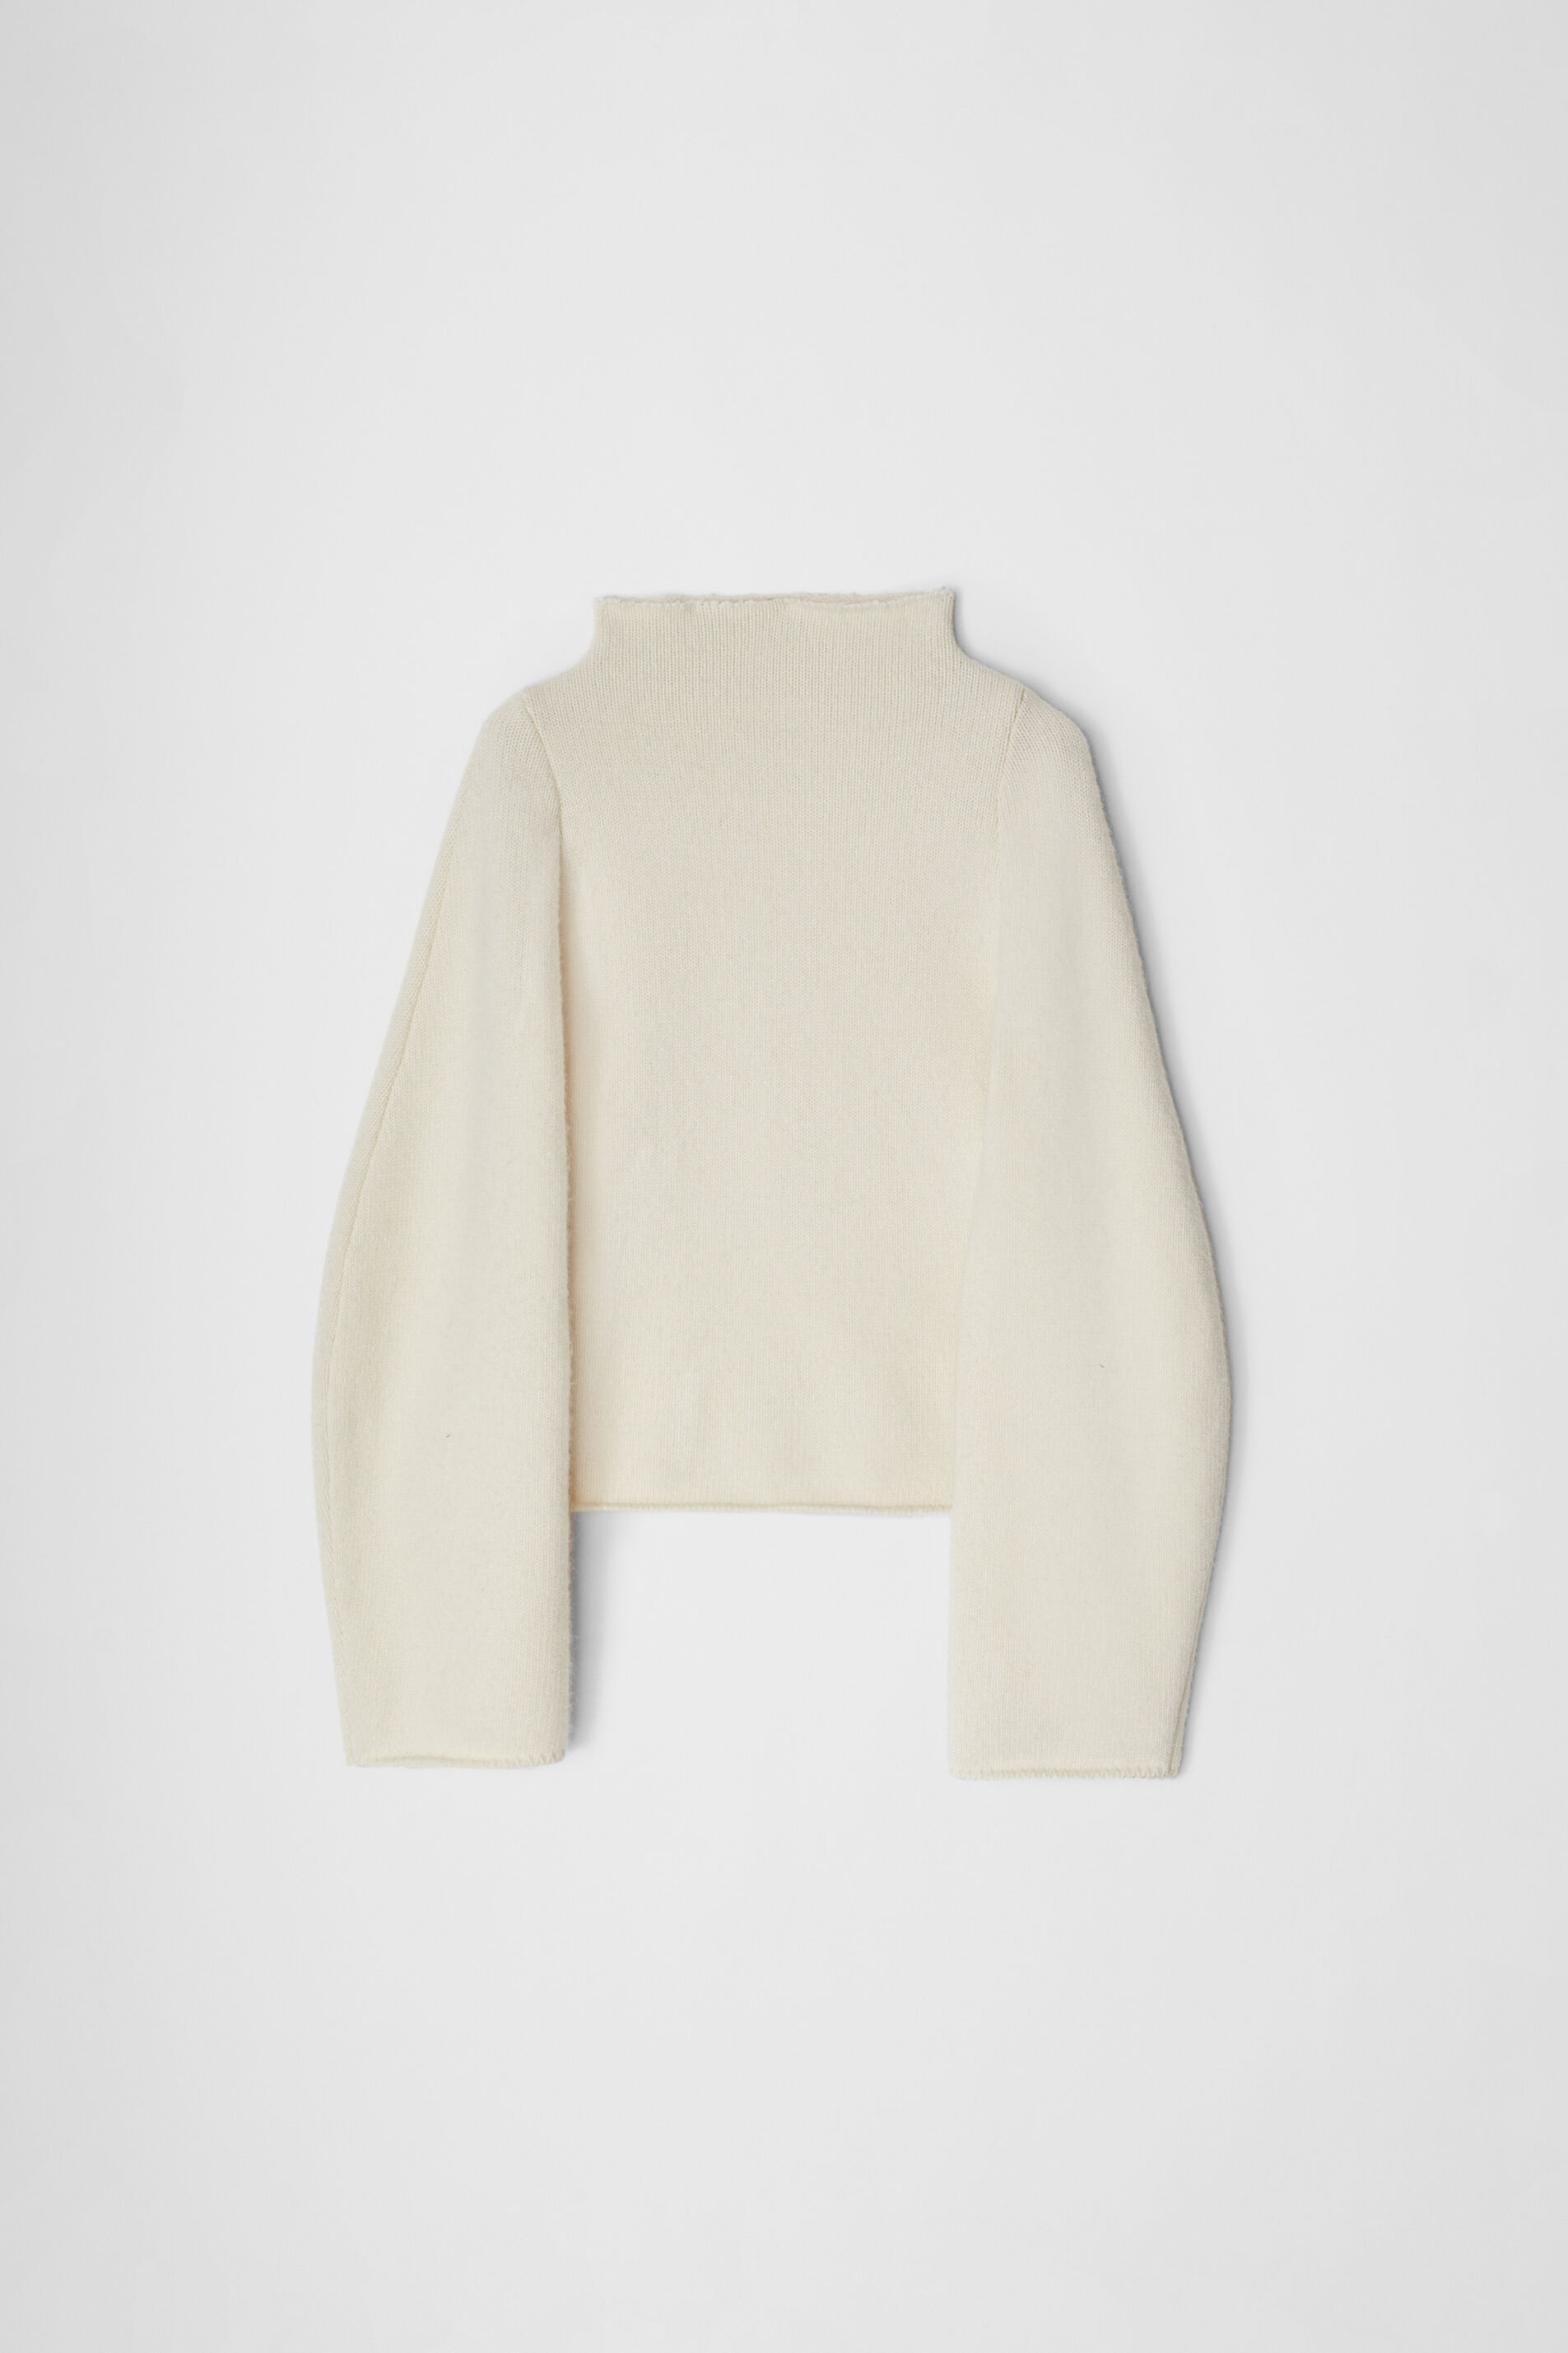 Sweater, white, large